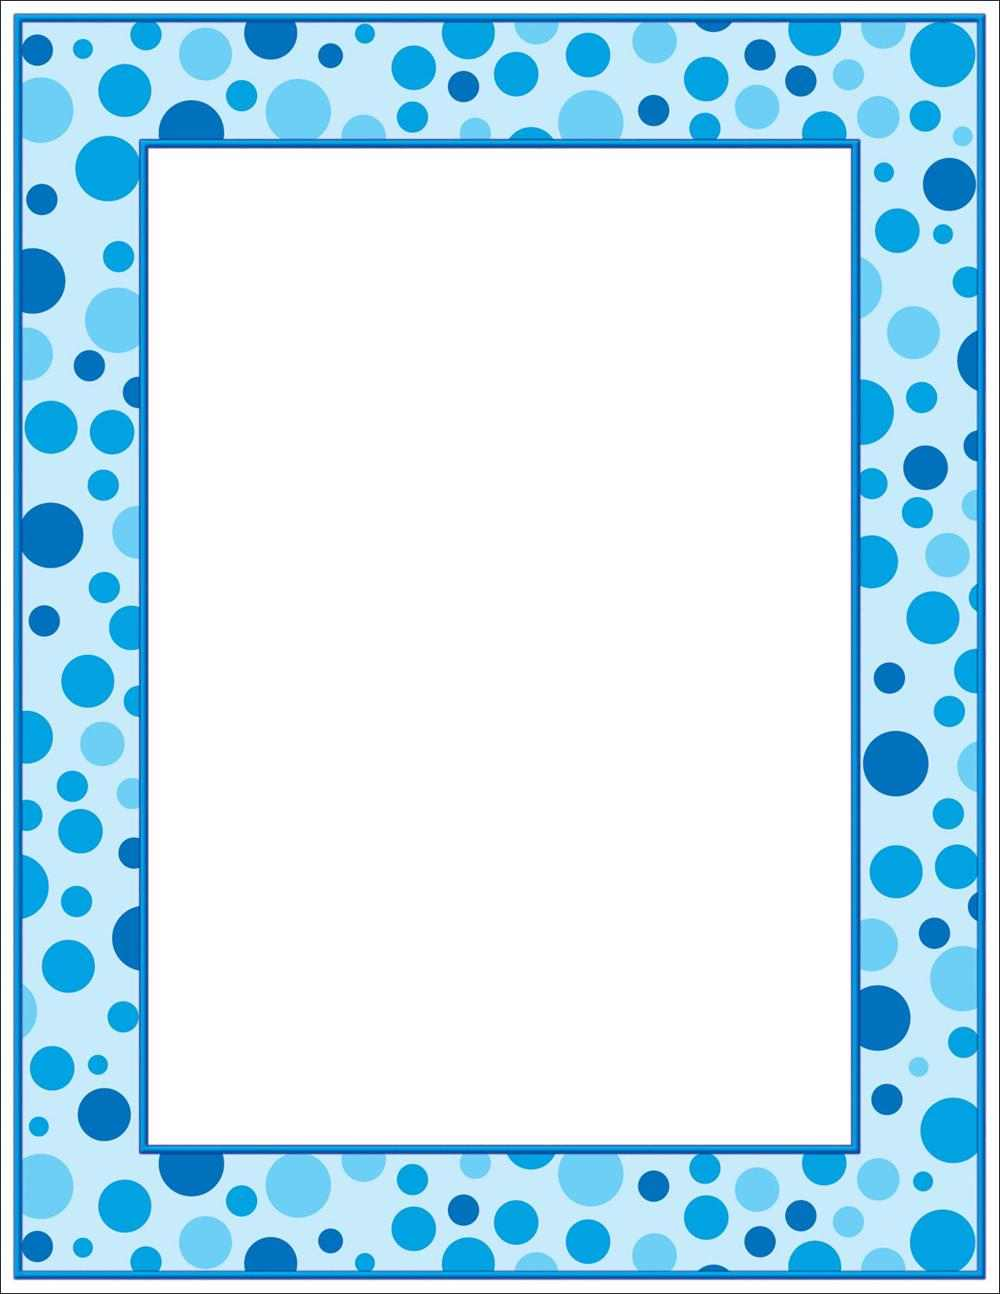 8 Images of Polka Dots Printable Baby Borders